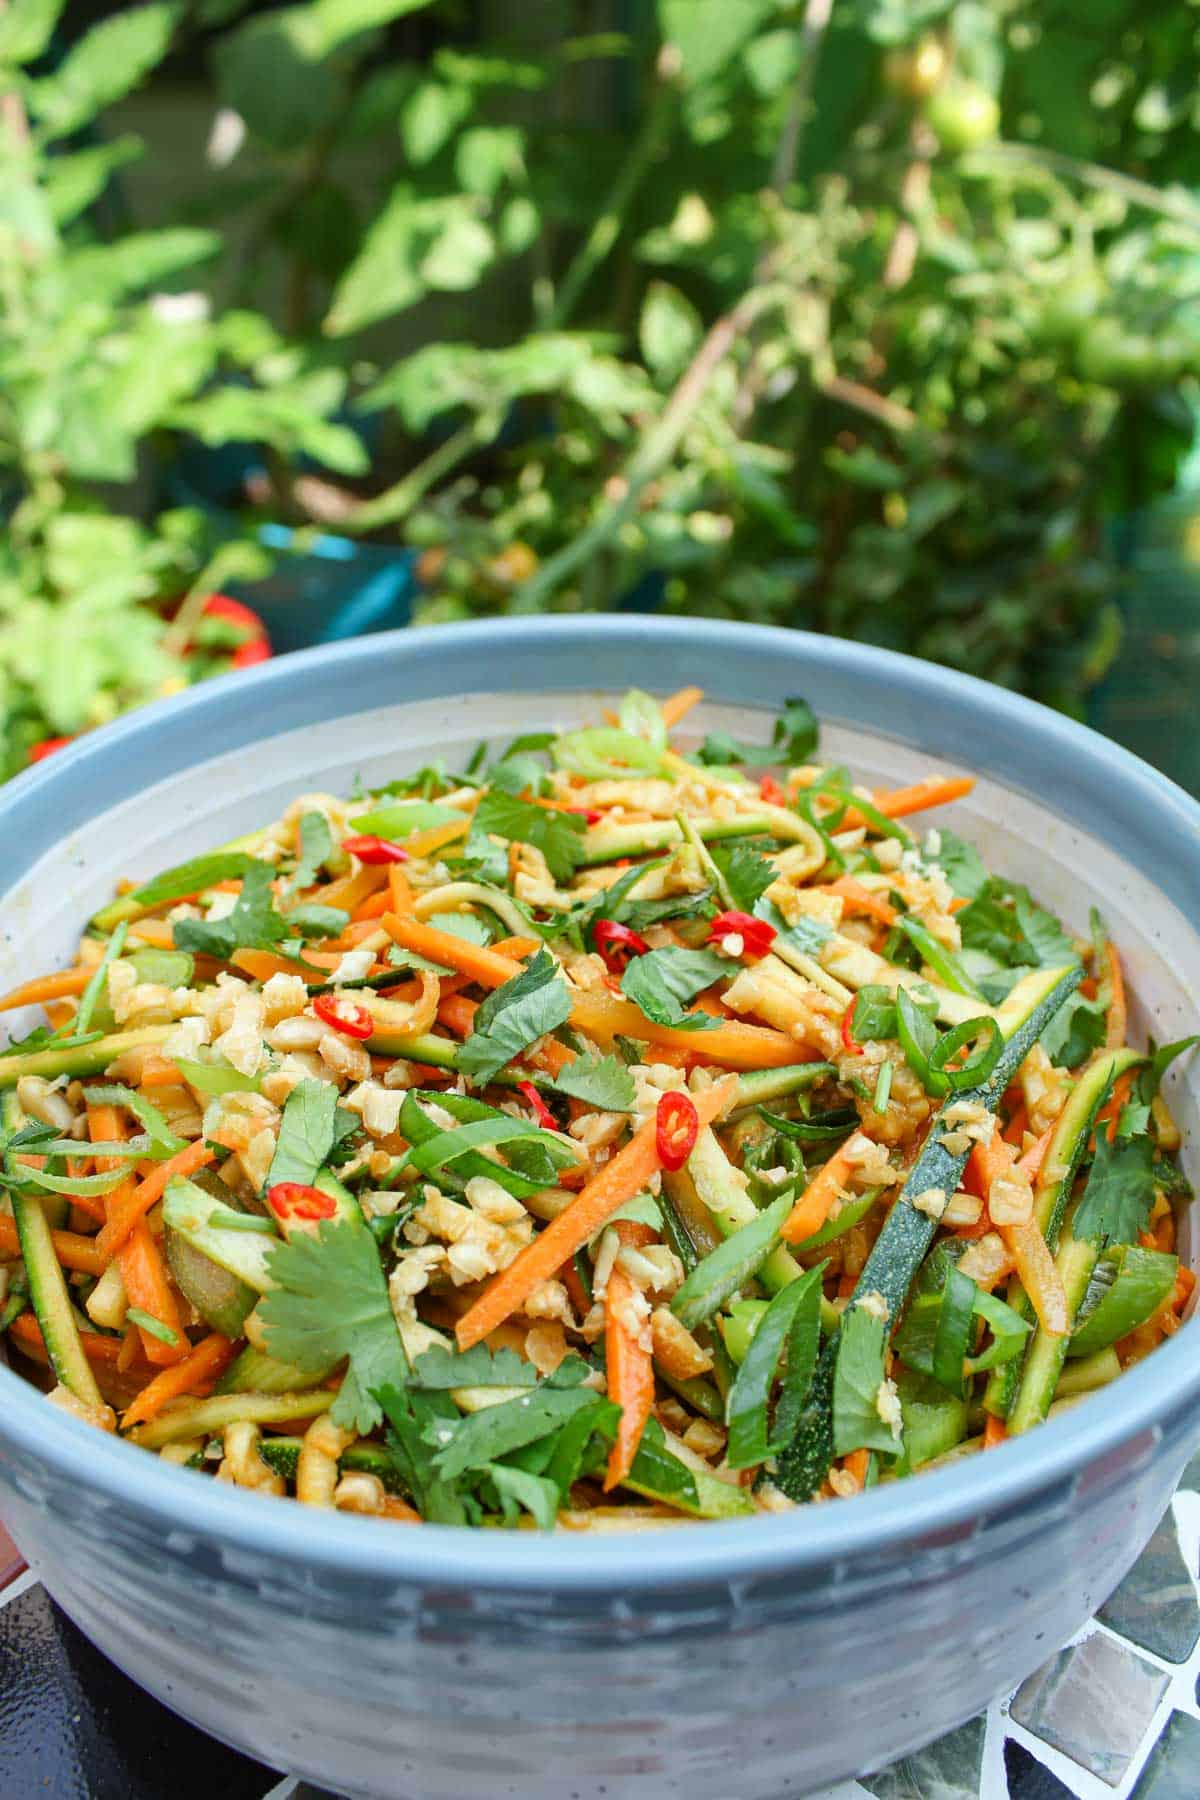 Courgette Salad with Peanut Dressing, Chilli, Coriander